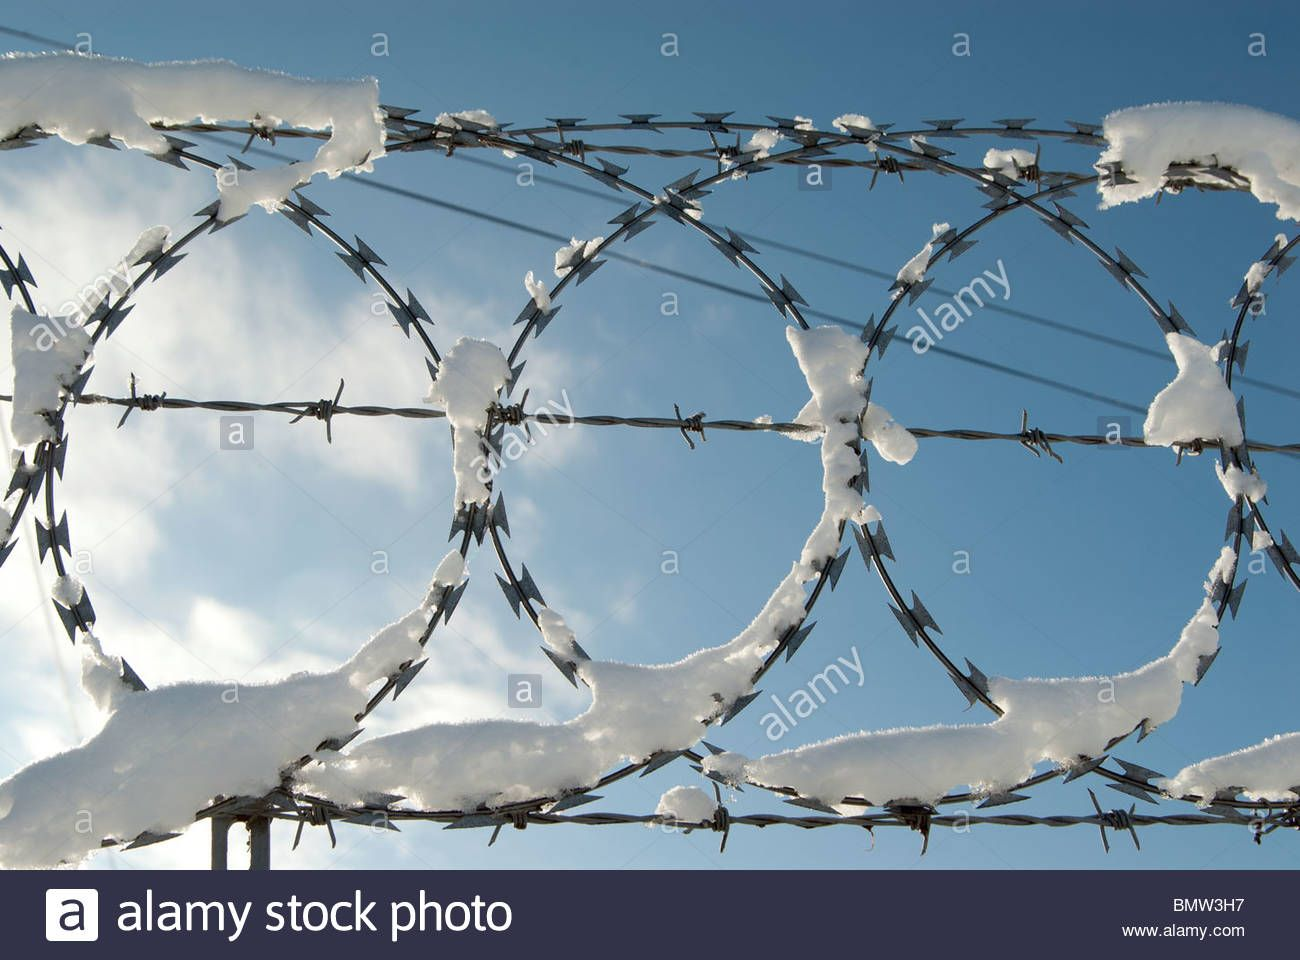 My new Pin razor-wire-or-barbed-tape-and-also-barbed-wire-with ...